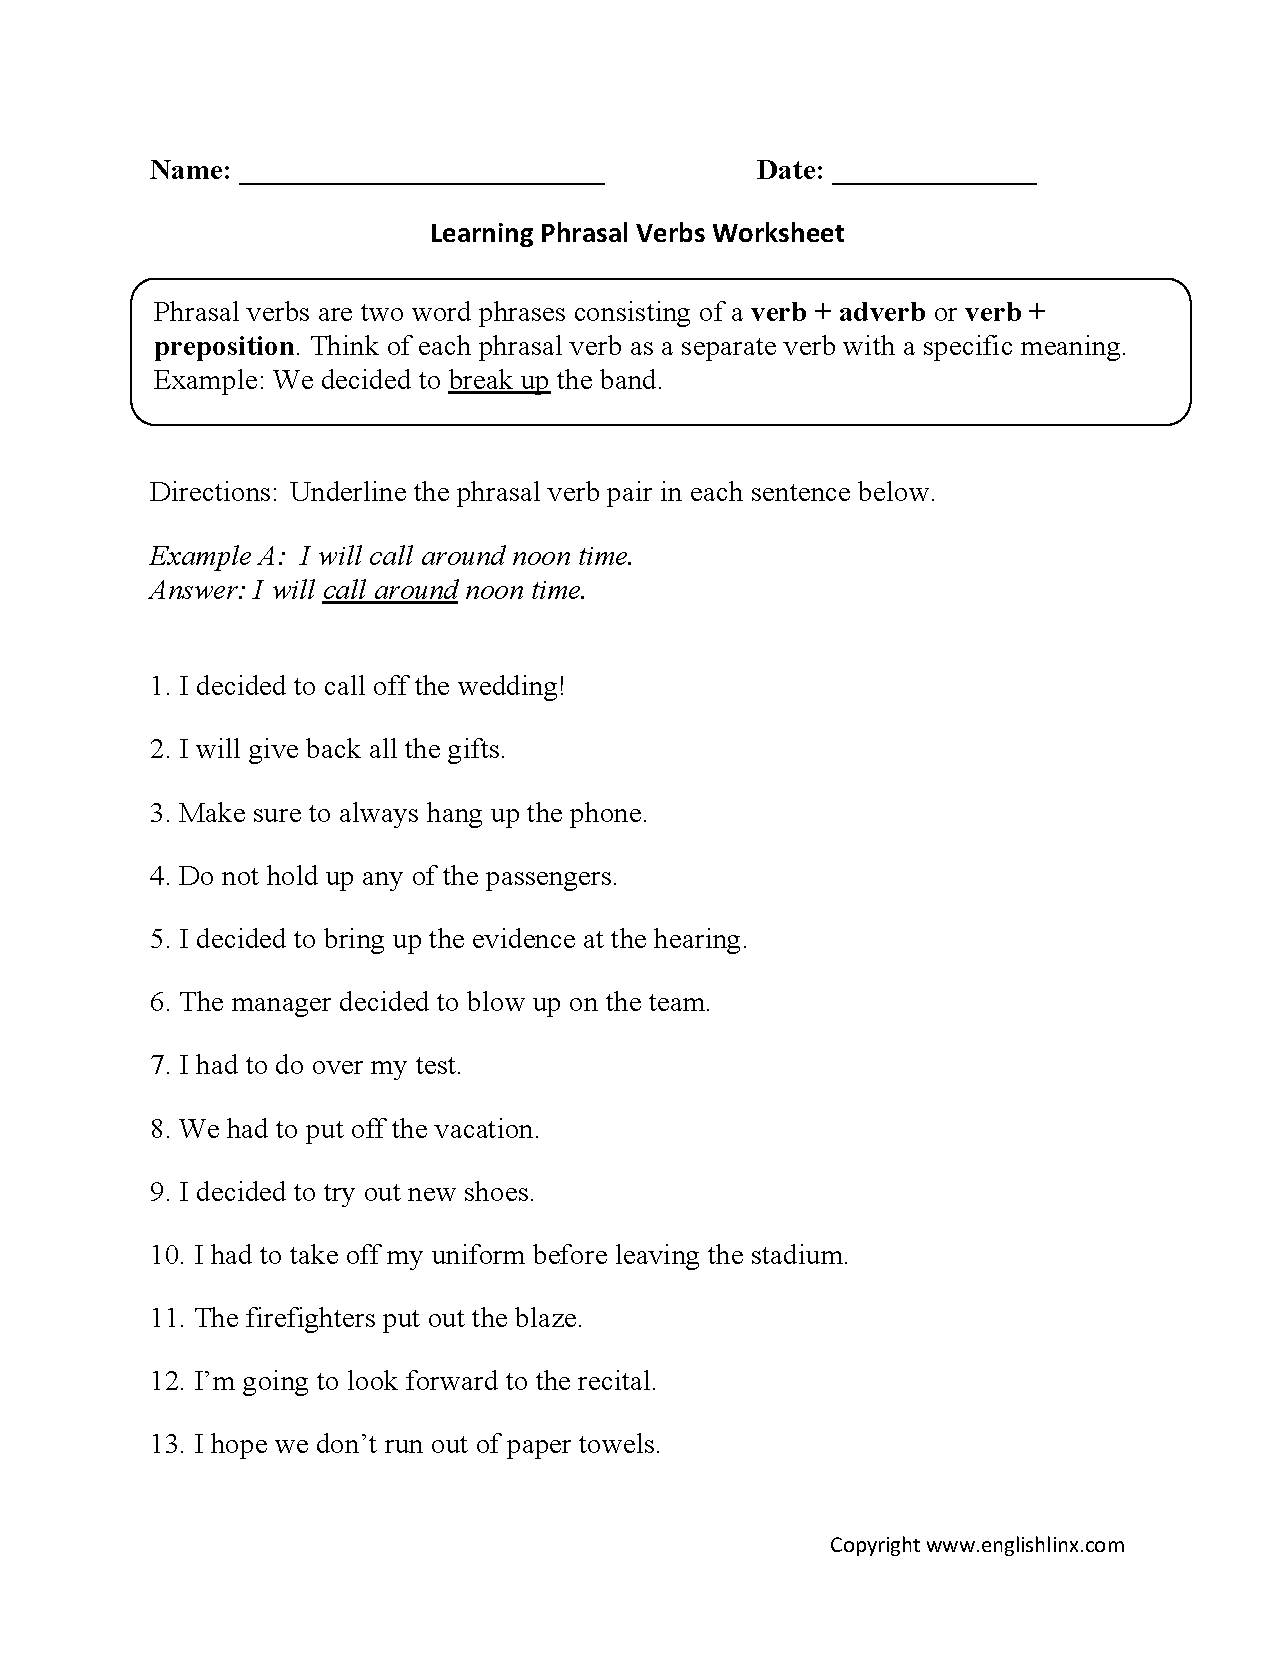 Worksheets Verb Tenses Worksheet englishlinx com verbs worksheets phrasal worksheets